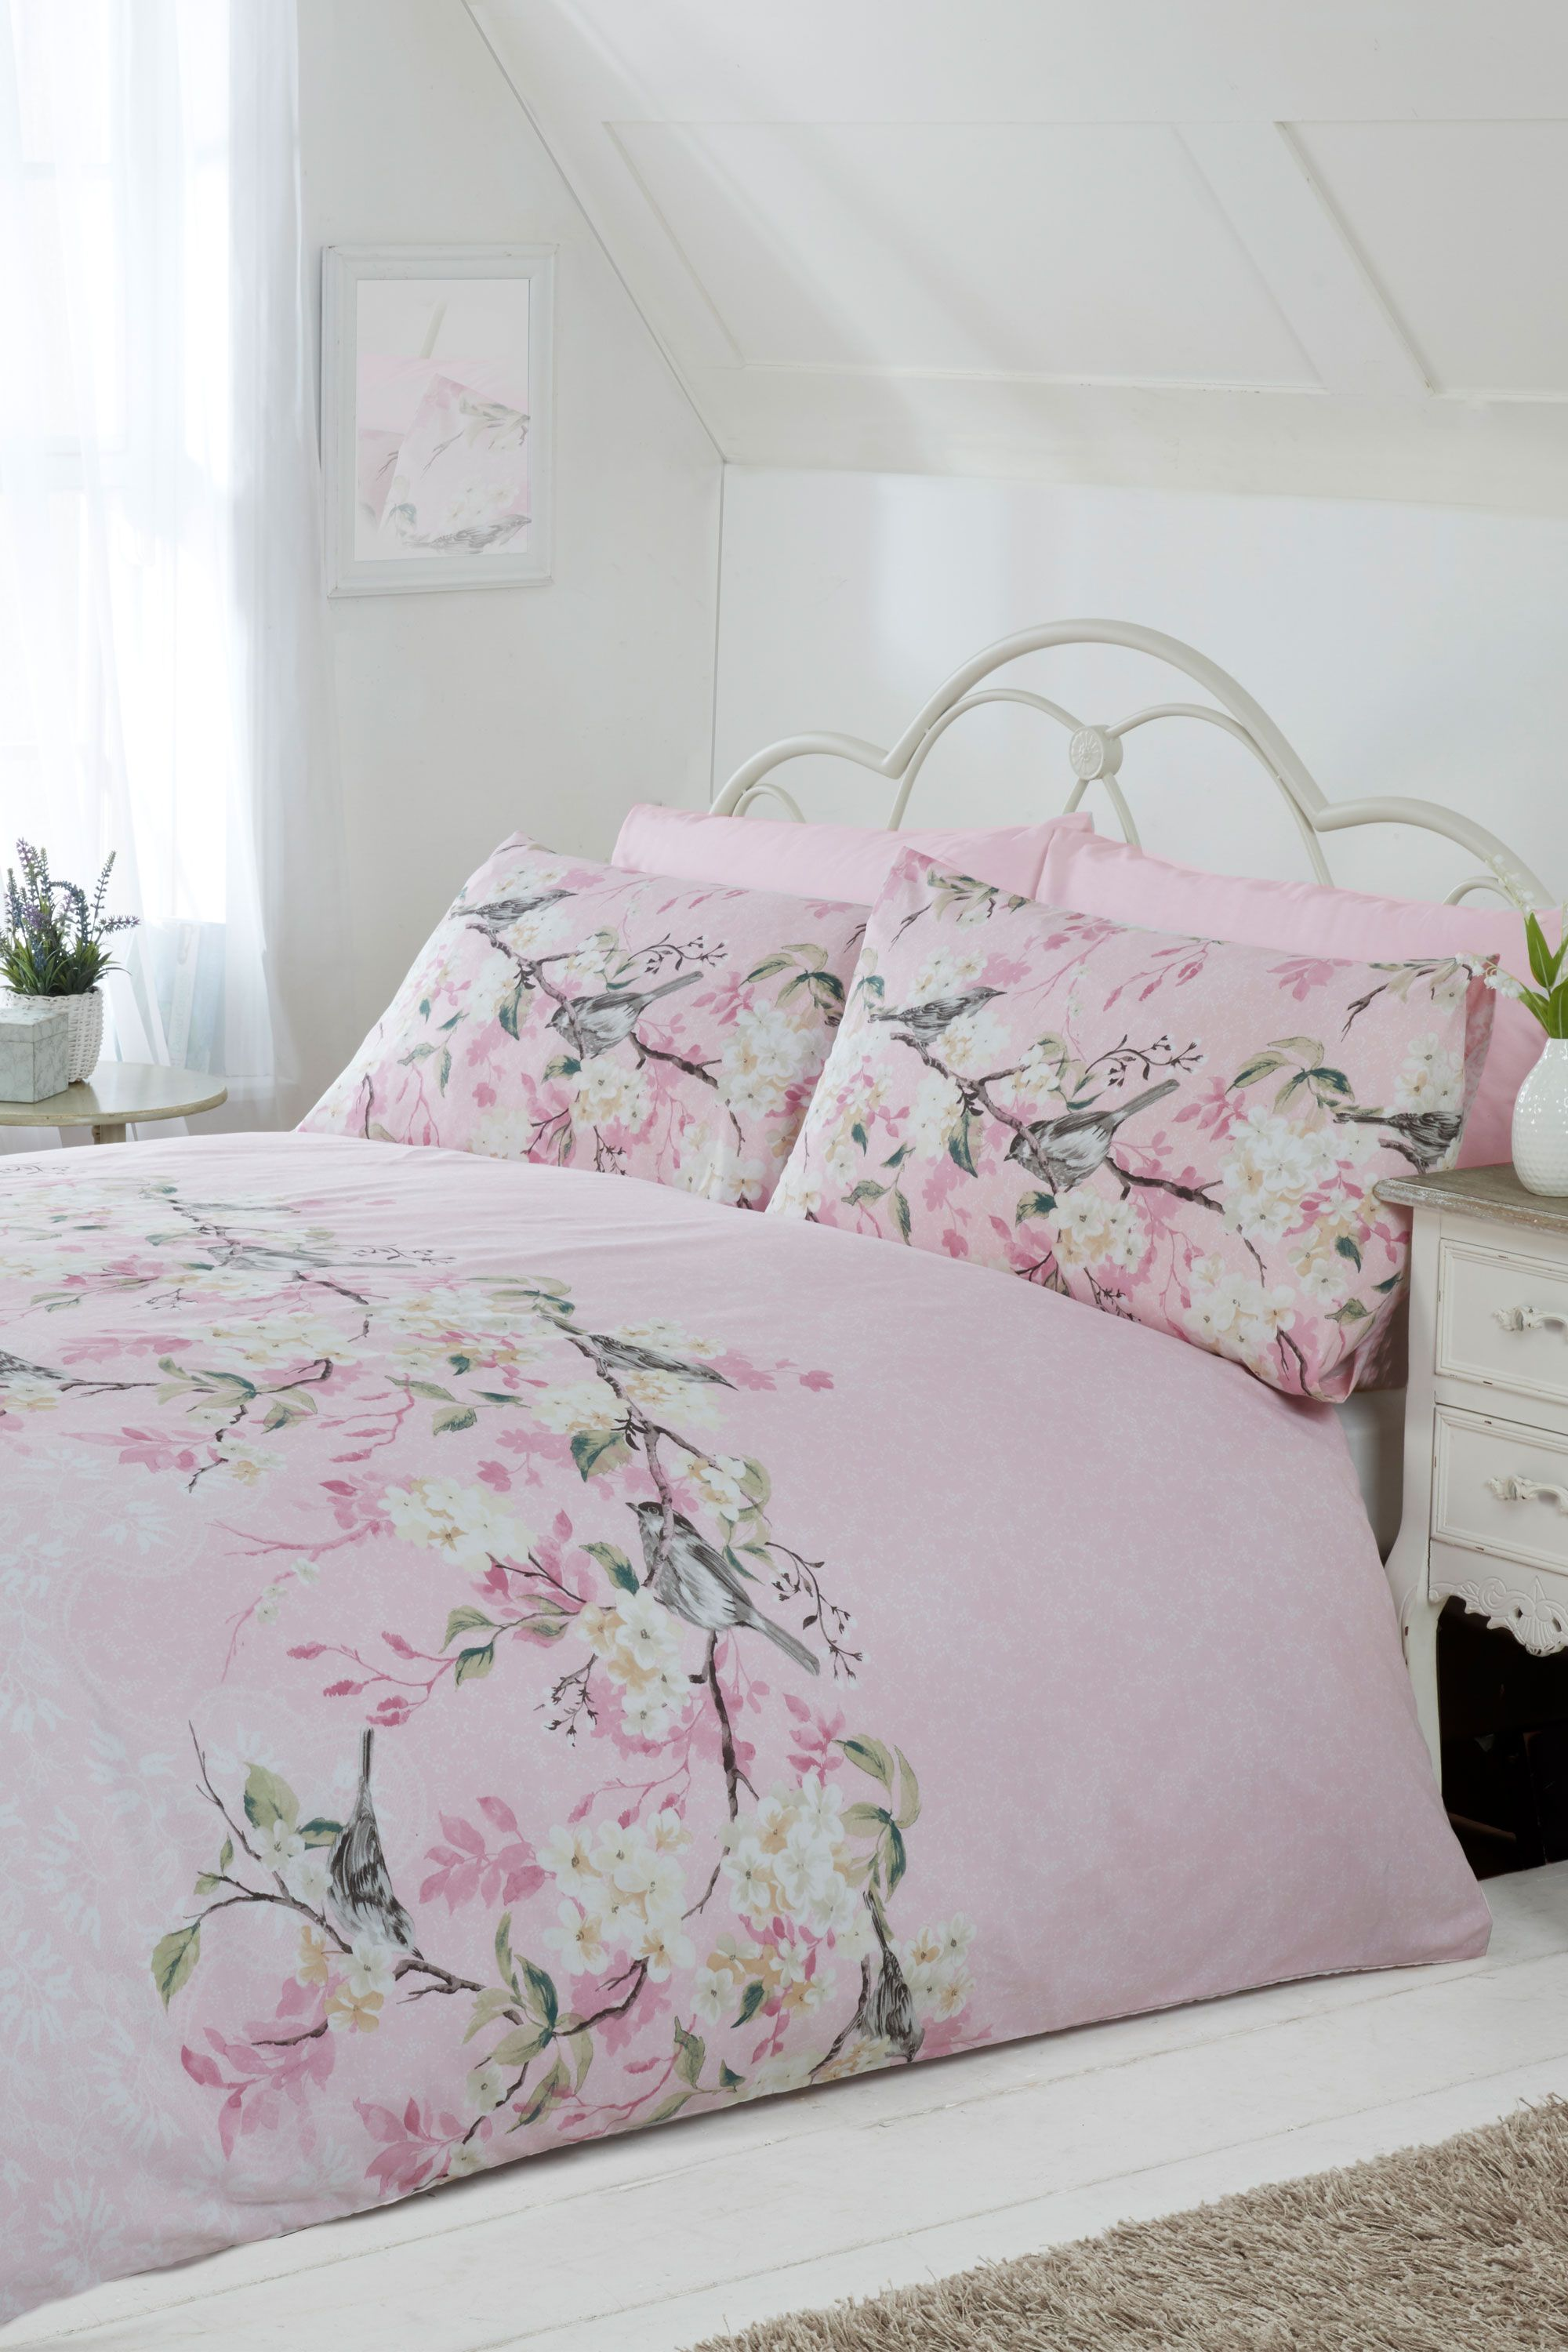 sampler email textilewarehouse for co final cover uk covers bridgewater products pink emma set duvet